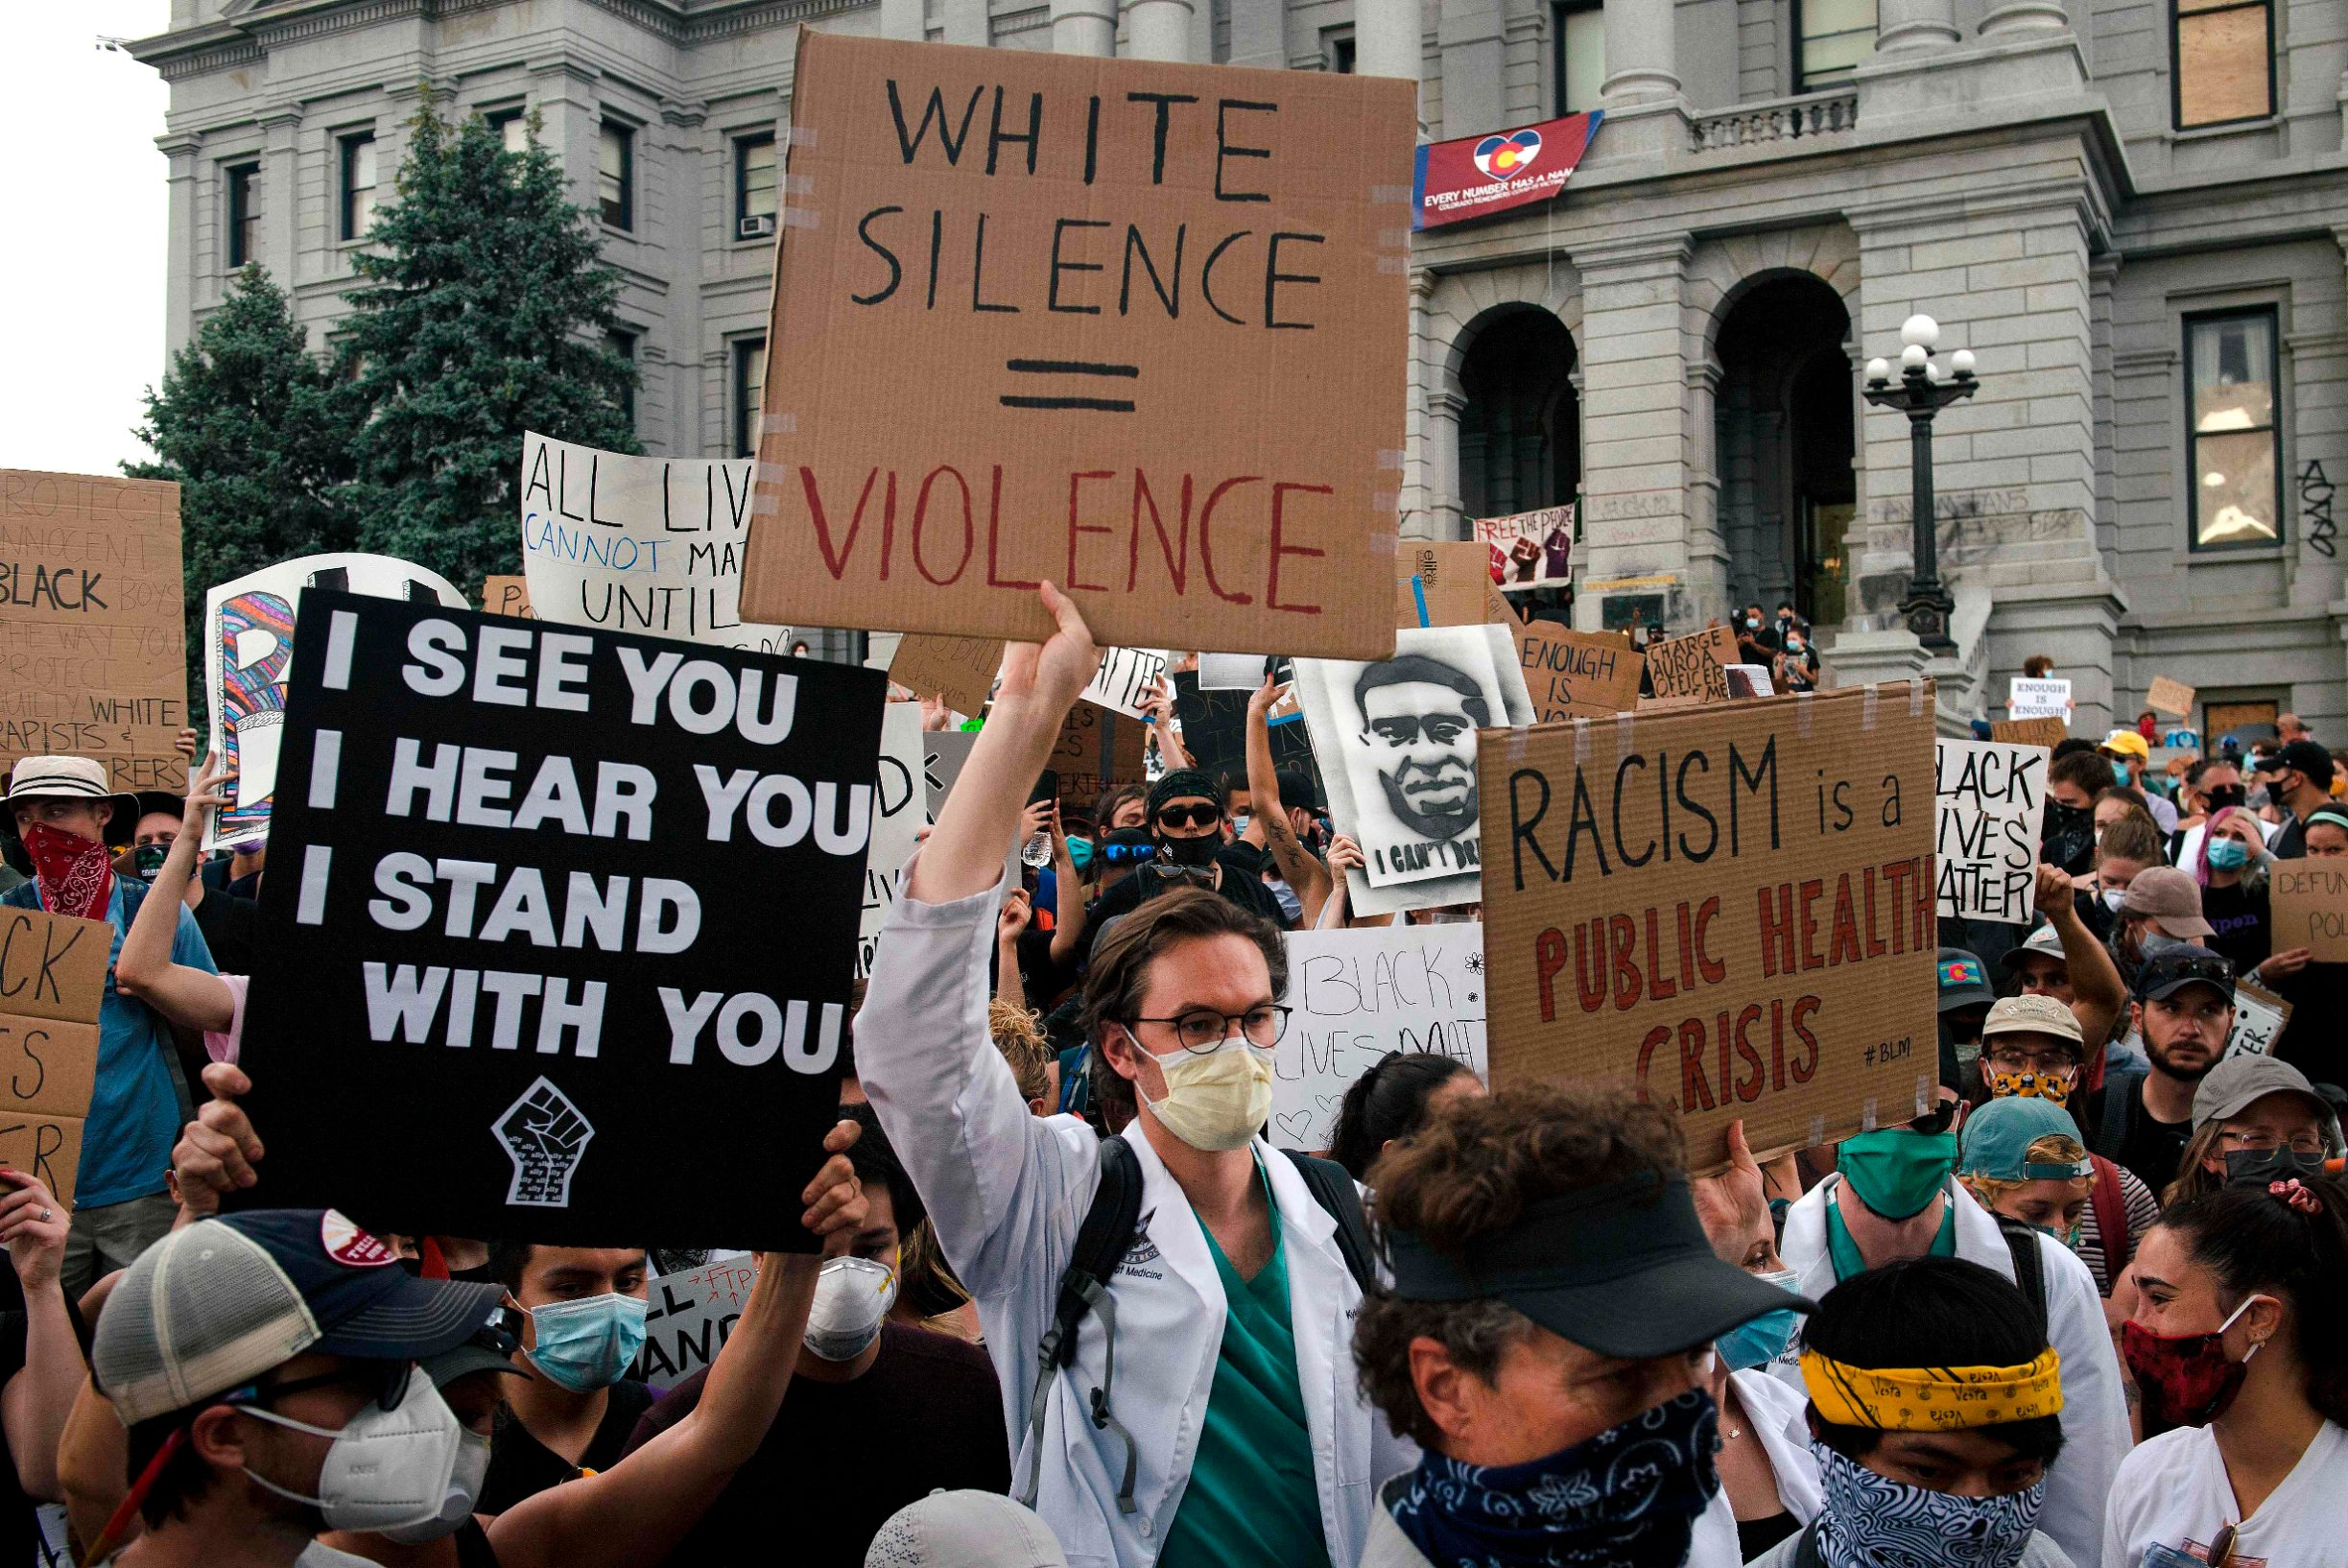 Demonstrators march in Denver, Colorado on June 3, 2020, while protesting the death of George Floyd, an unarmed black man who died while while being arrested and pinned to the ground by the knee of a Minneapolis police officer. - US protesters welcomed new charges brought Wednesday against Minneapolis officers in the killing of African American man George Floyd -- but thousands still marched in cities across the country for a ninth straight night, chanting against racism and police brutality. (Photo by Jason Connolly / AFP)